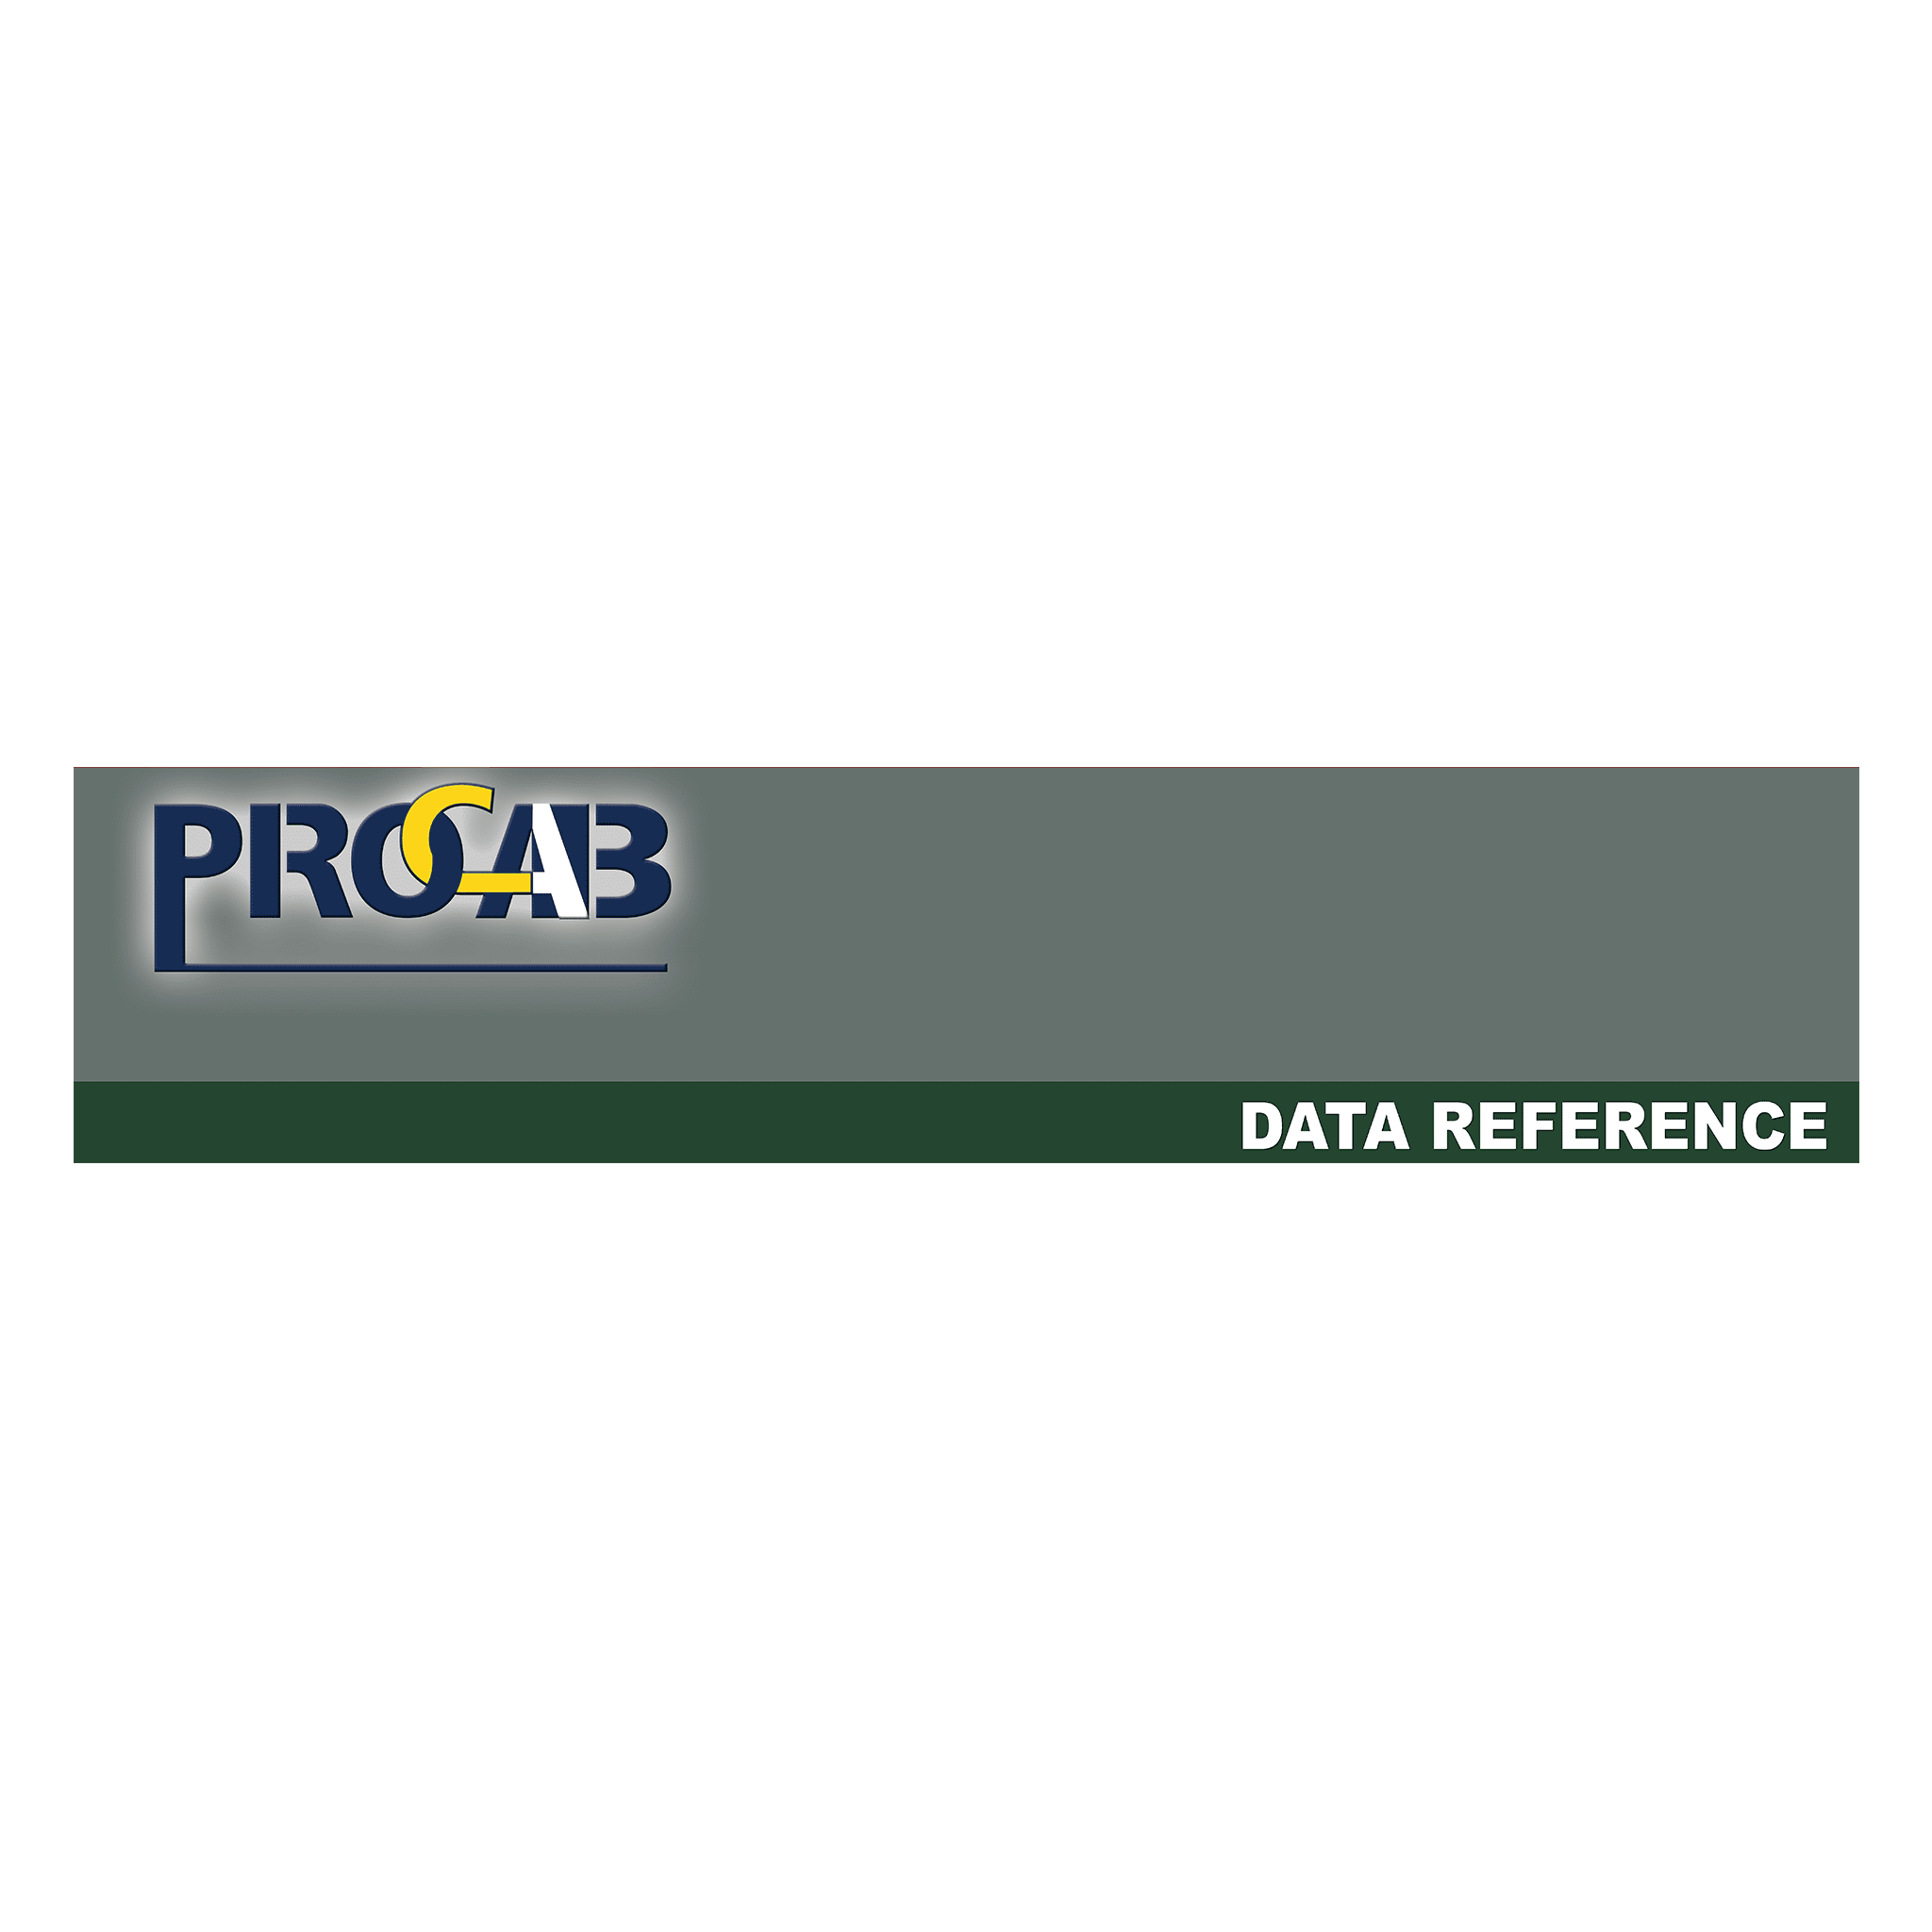 PROMORD240546096 - Display stand rd4000 - PROCAB - data reference display 90 cm